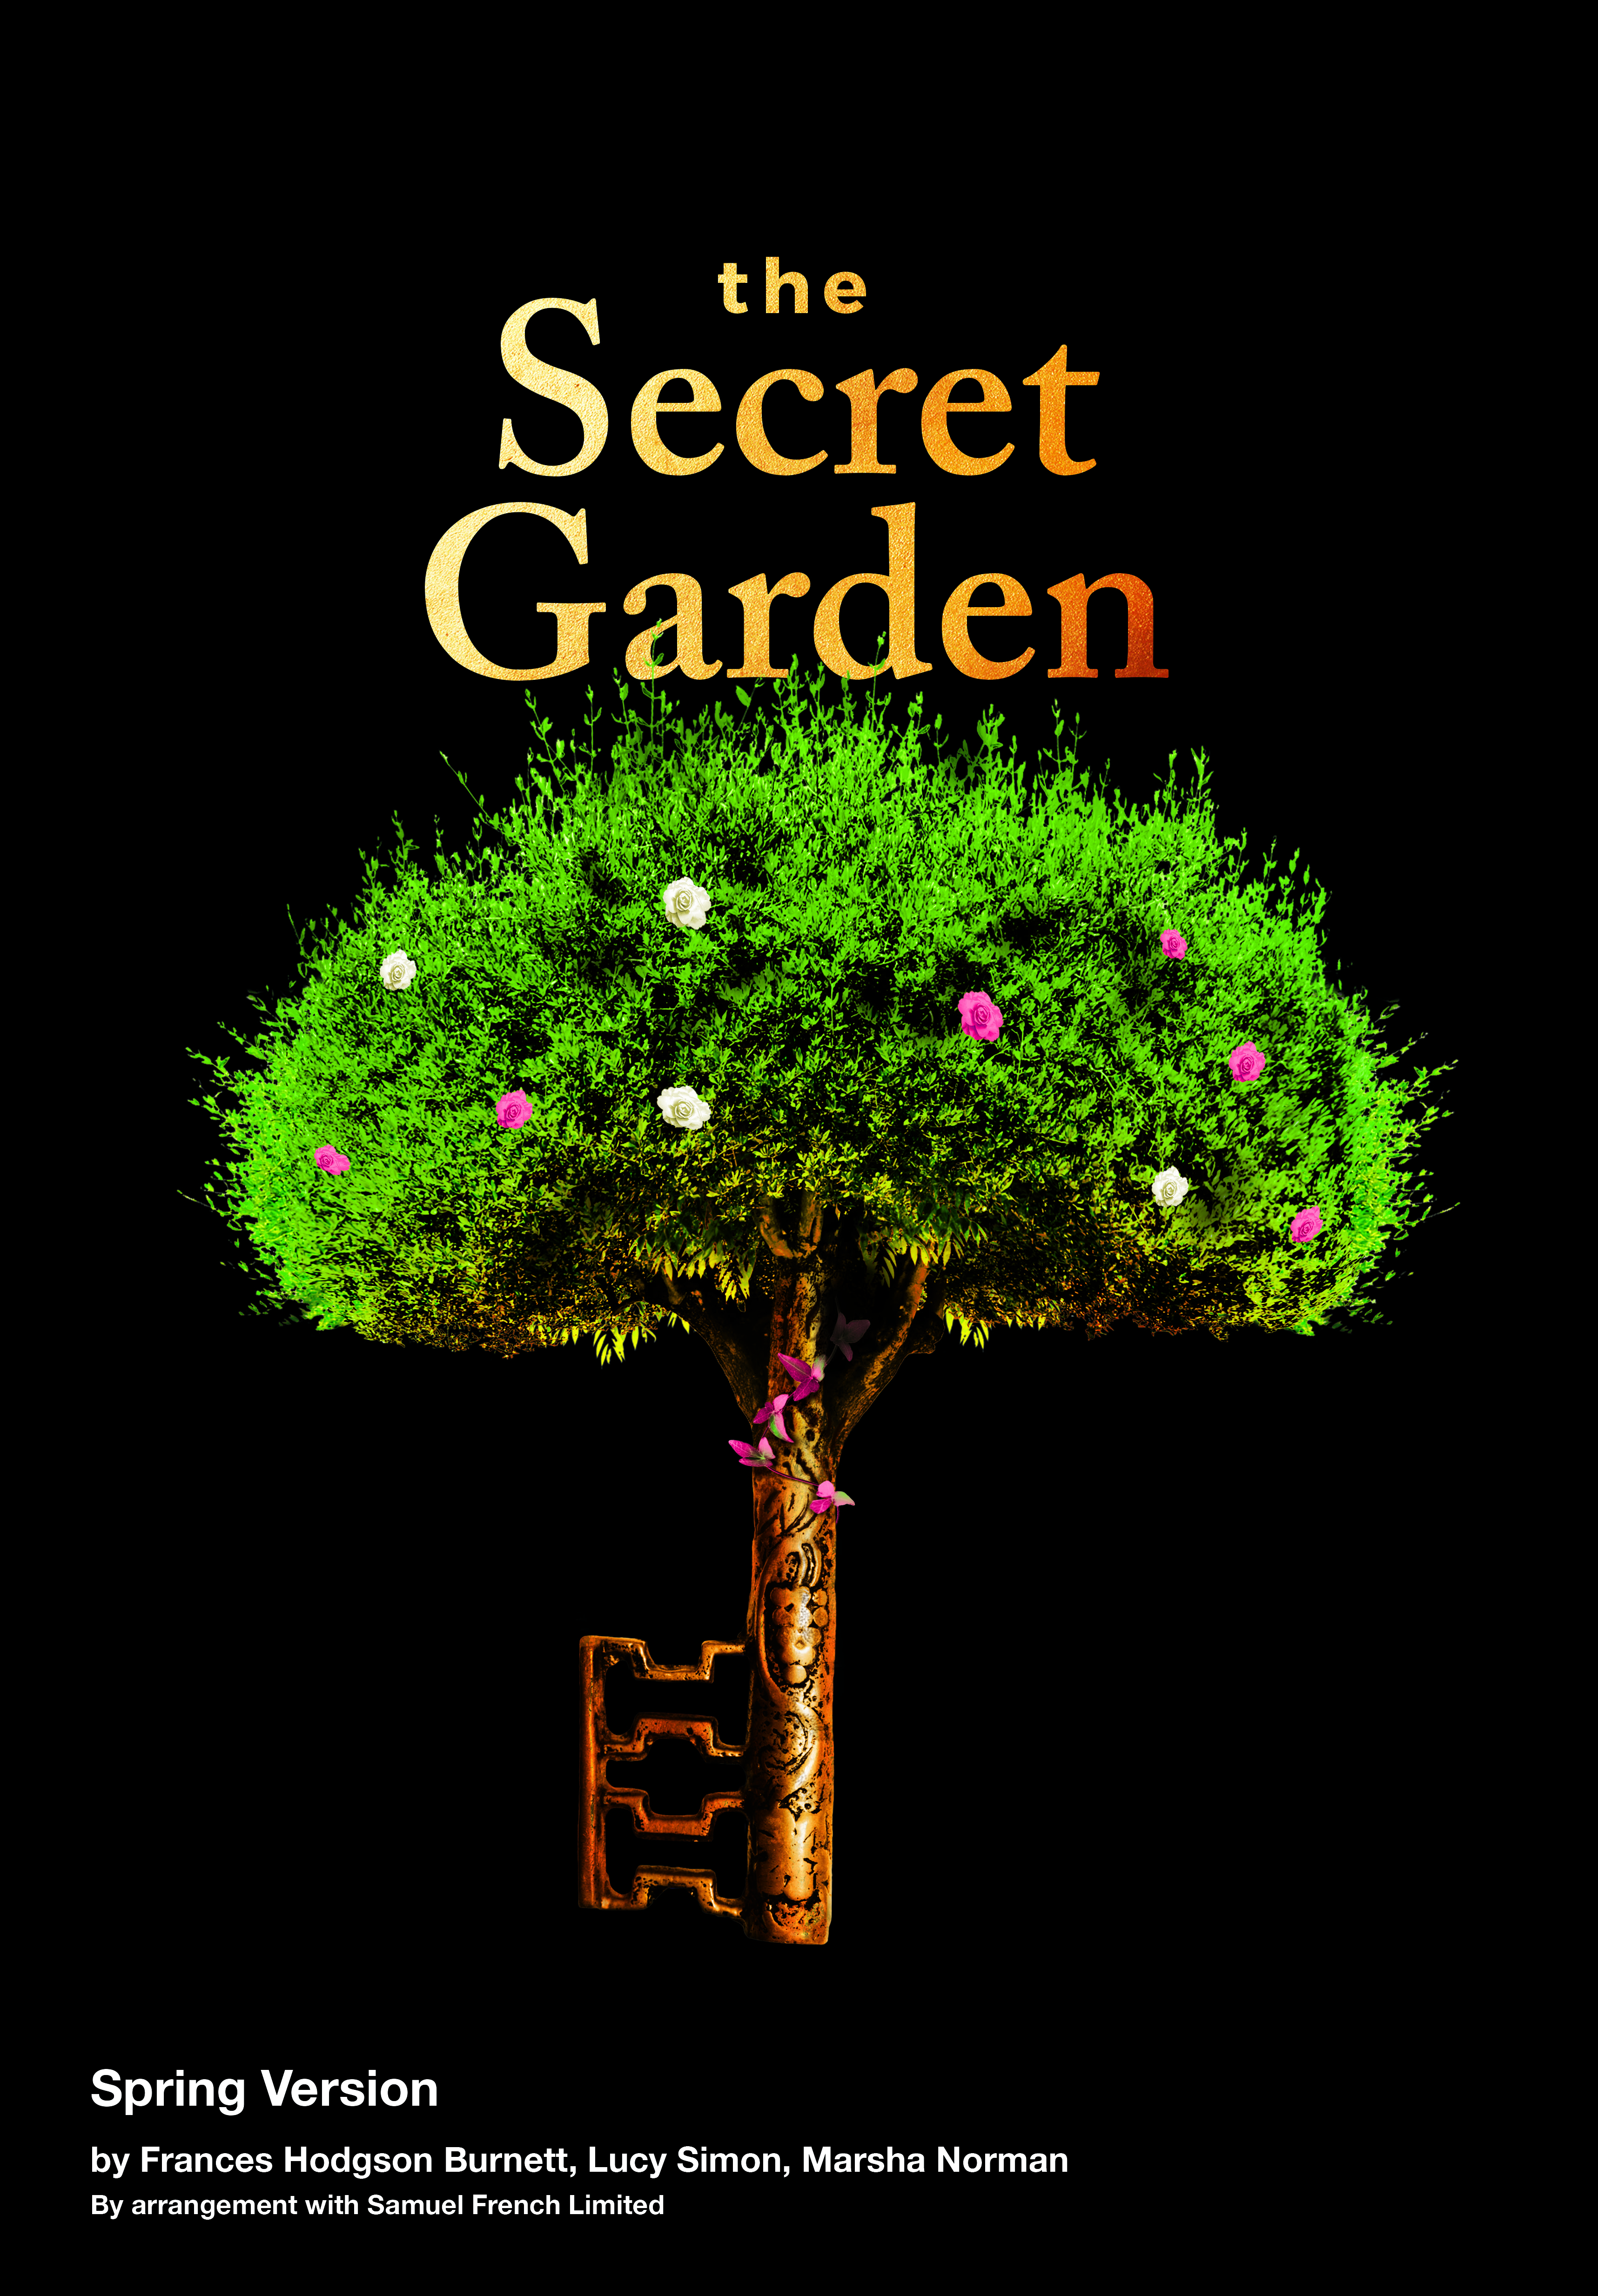 the secret garden feminist criticism The secret garden is a children's novel by frances hodgson burnett first published as a book in 1911, after a version was published as an american magazine serial beginning in 1910 set in england, it is one of burnett's most popular novels and is considered a classic of english children's literature several stage and film adaptations have.